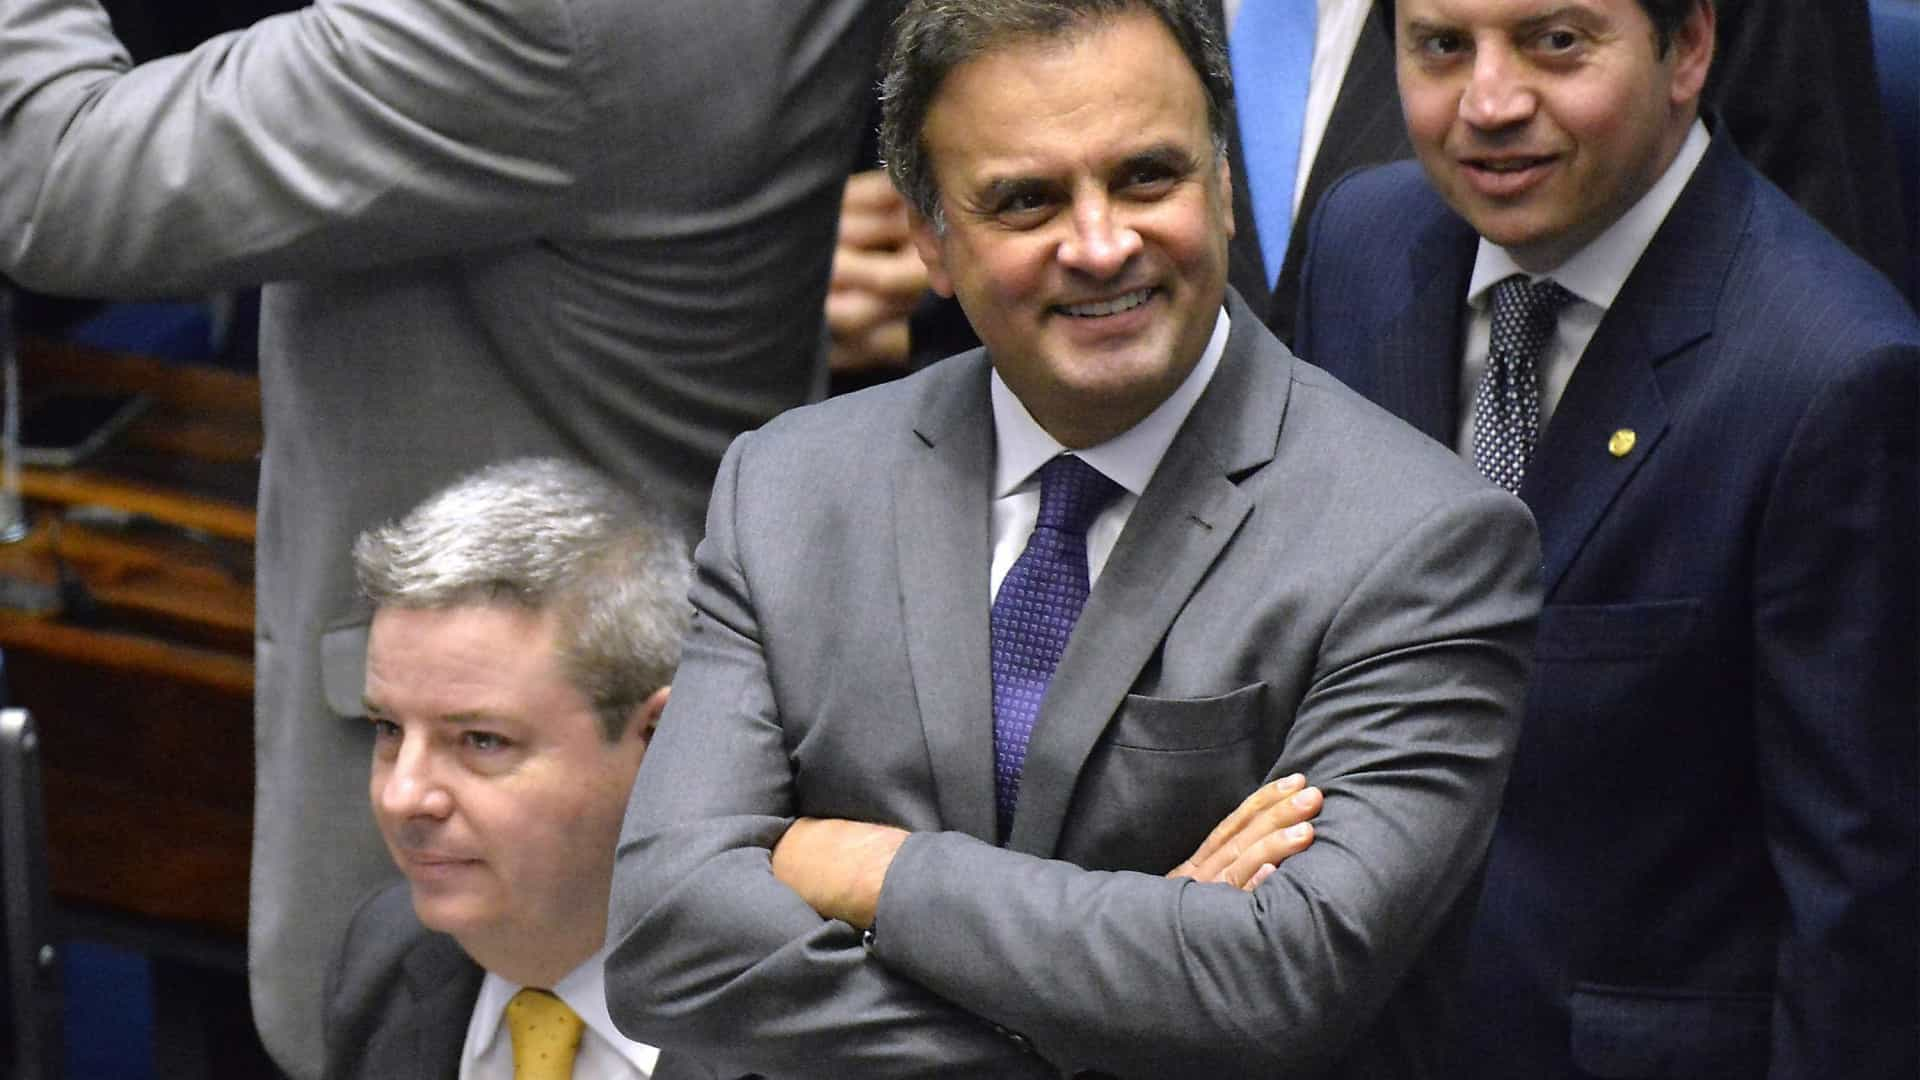 Juiz do Supremo Tribunal Federal negou pedido de prisão de Aécio Neves